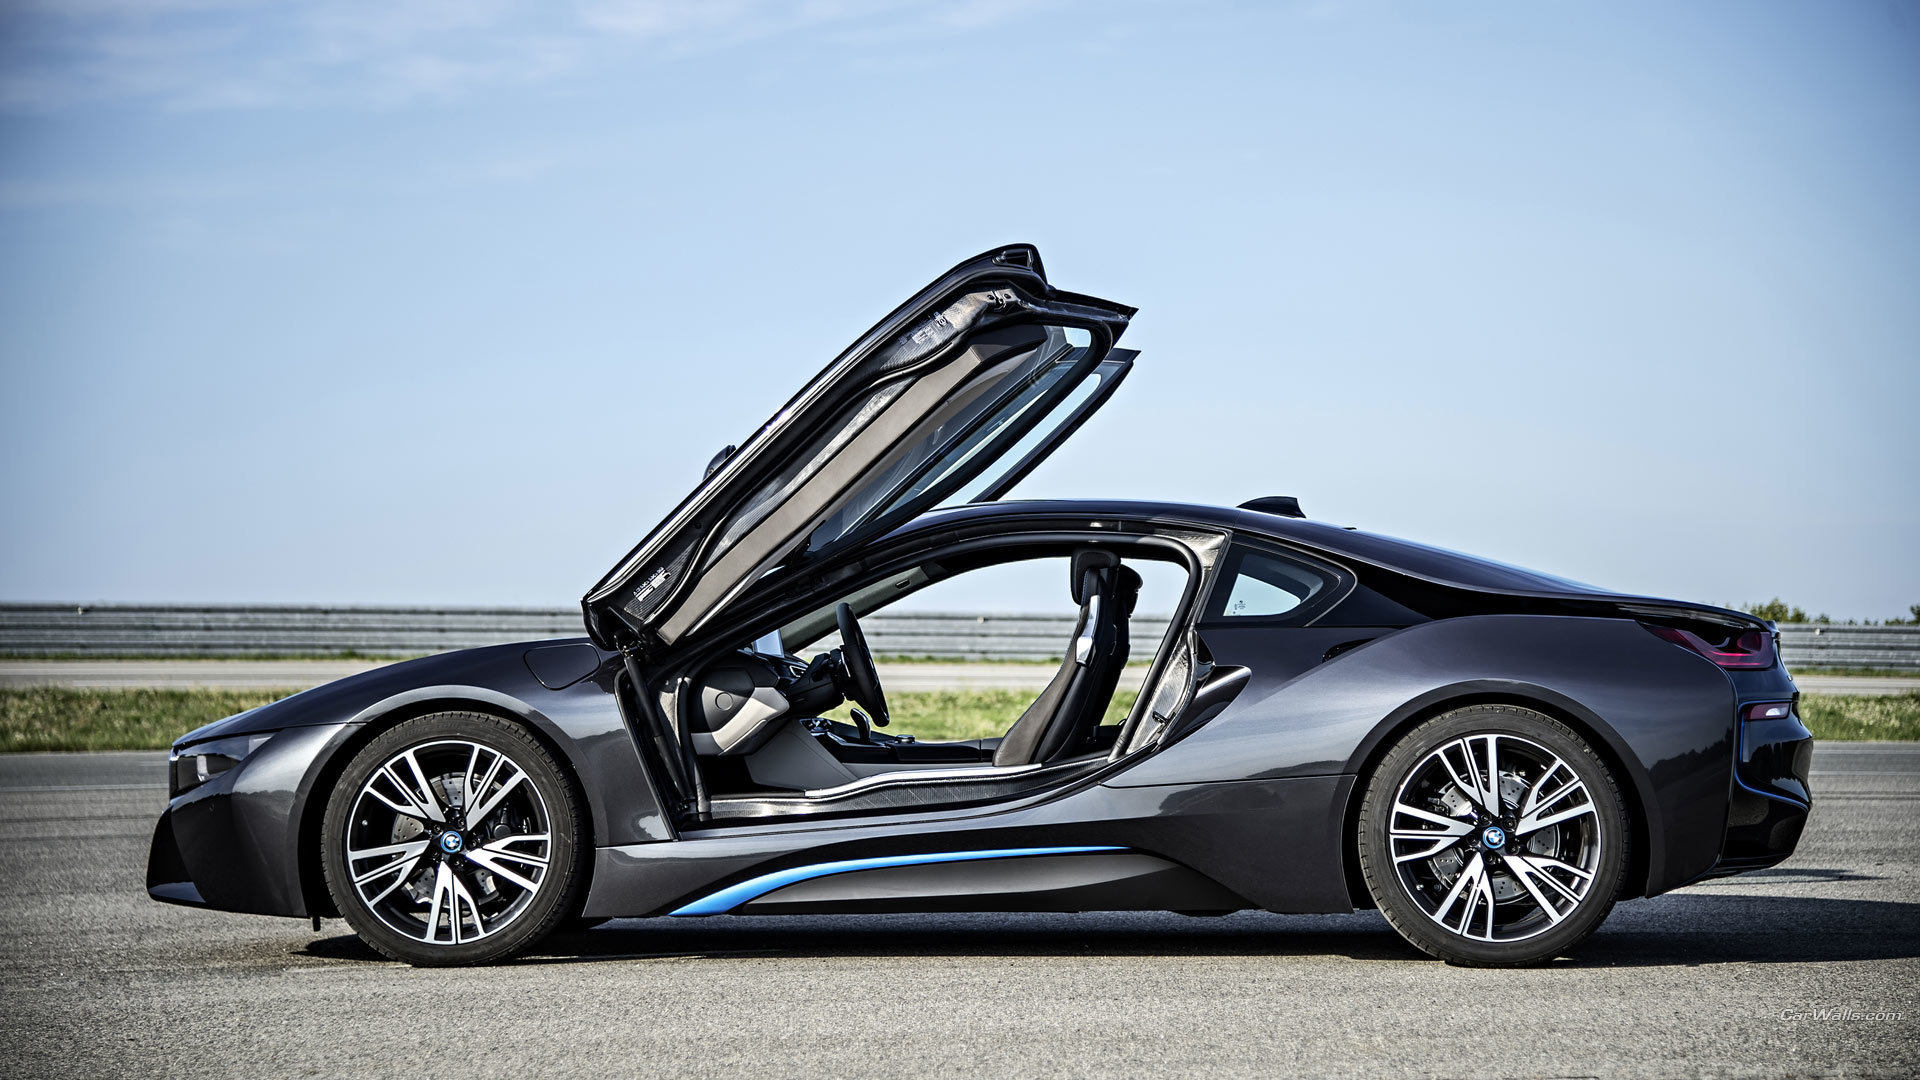 Best Bmw I8 Wallpaper Id 126964 For High Resolution Full Hd 1920x1080 Computer